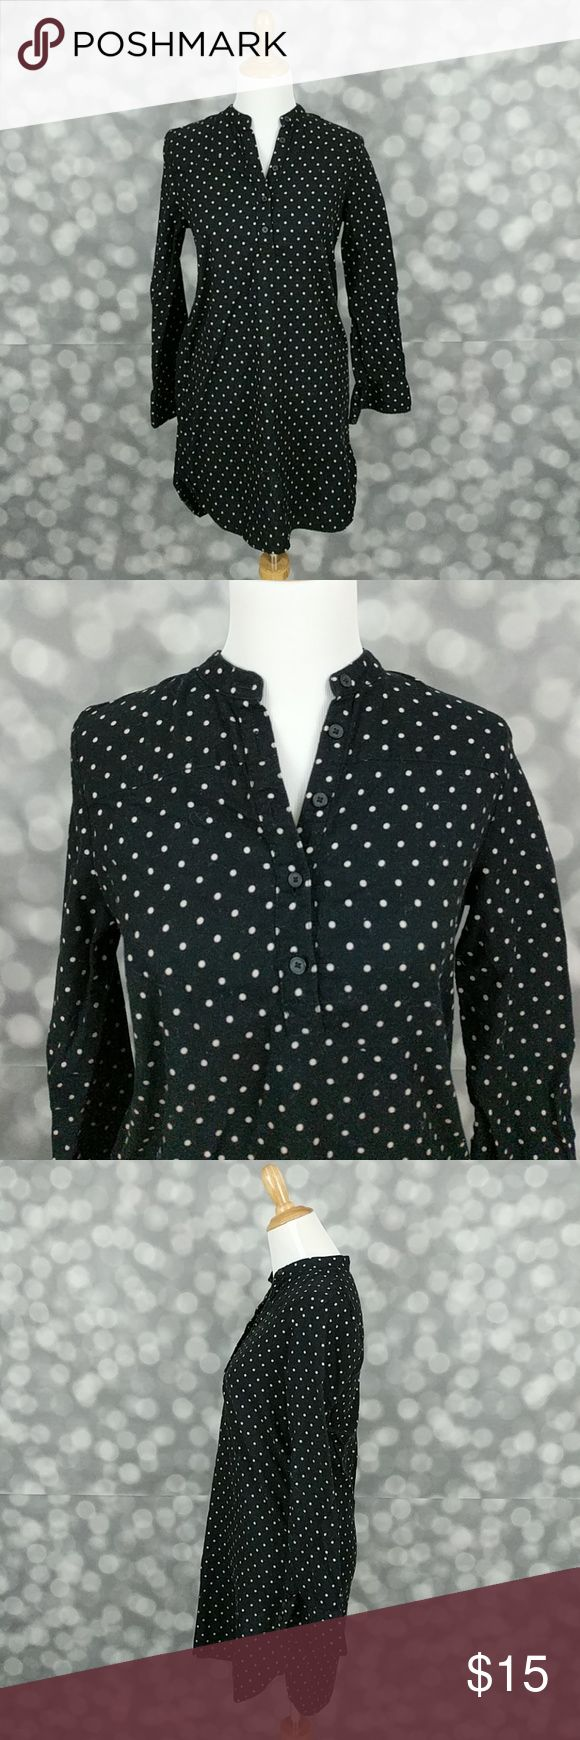 Uniqlo Polka Dot Dress Black and tan polka dot button down dress from Uniqlo with straight fit.  Laying flat and fastened, dress measures approximately 18 inches from armpit to armpit and throughout dress and is 32 inches in overall length. Uniqlo Dresses Long Sleeve